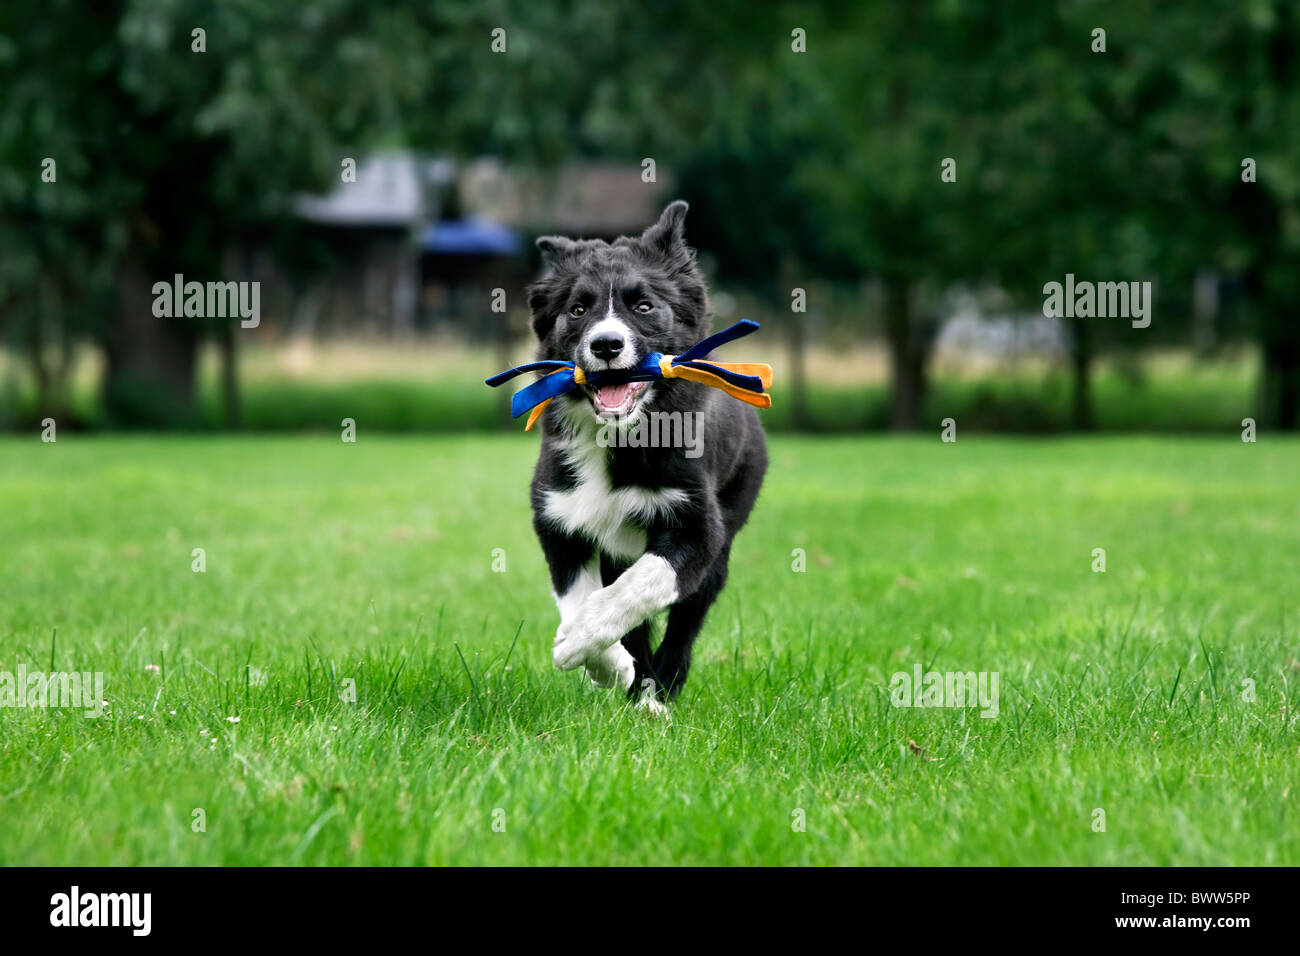 Border Collie (Canis lupus familiaris) fetching toy in garden - Stock Image